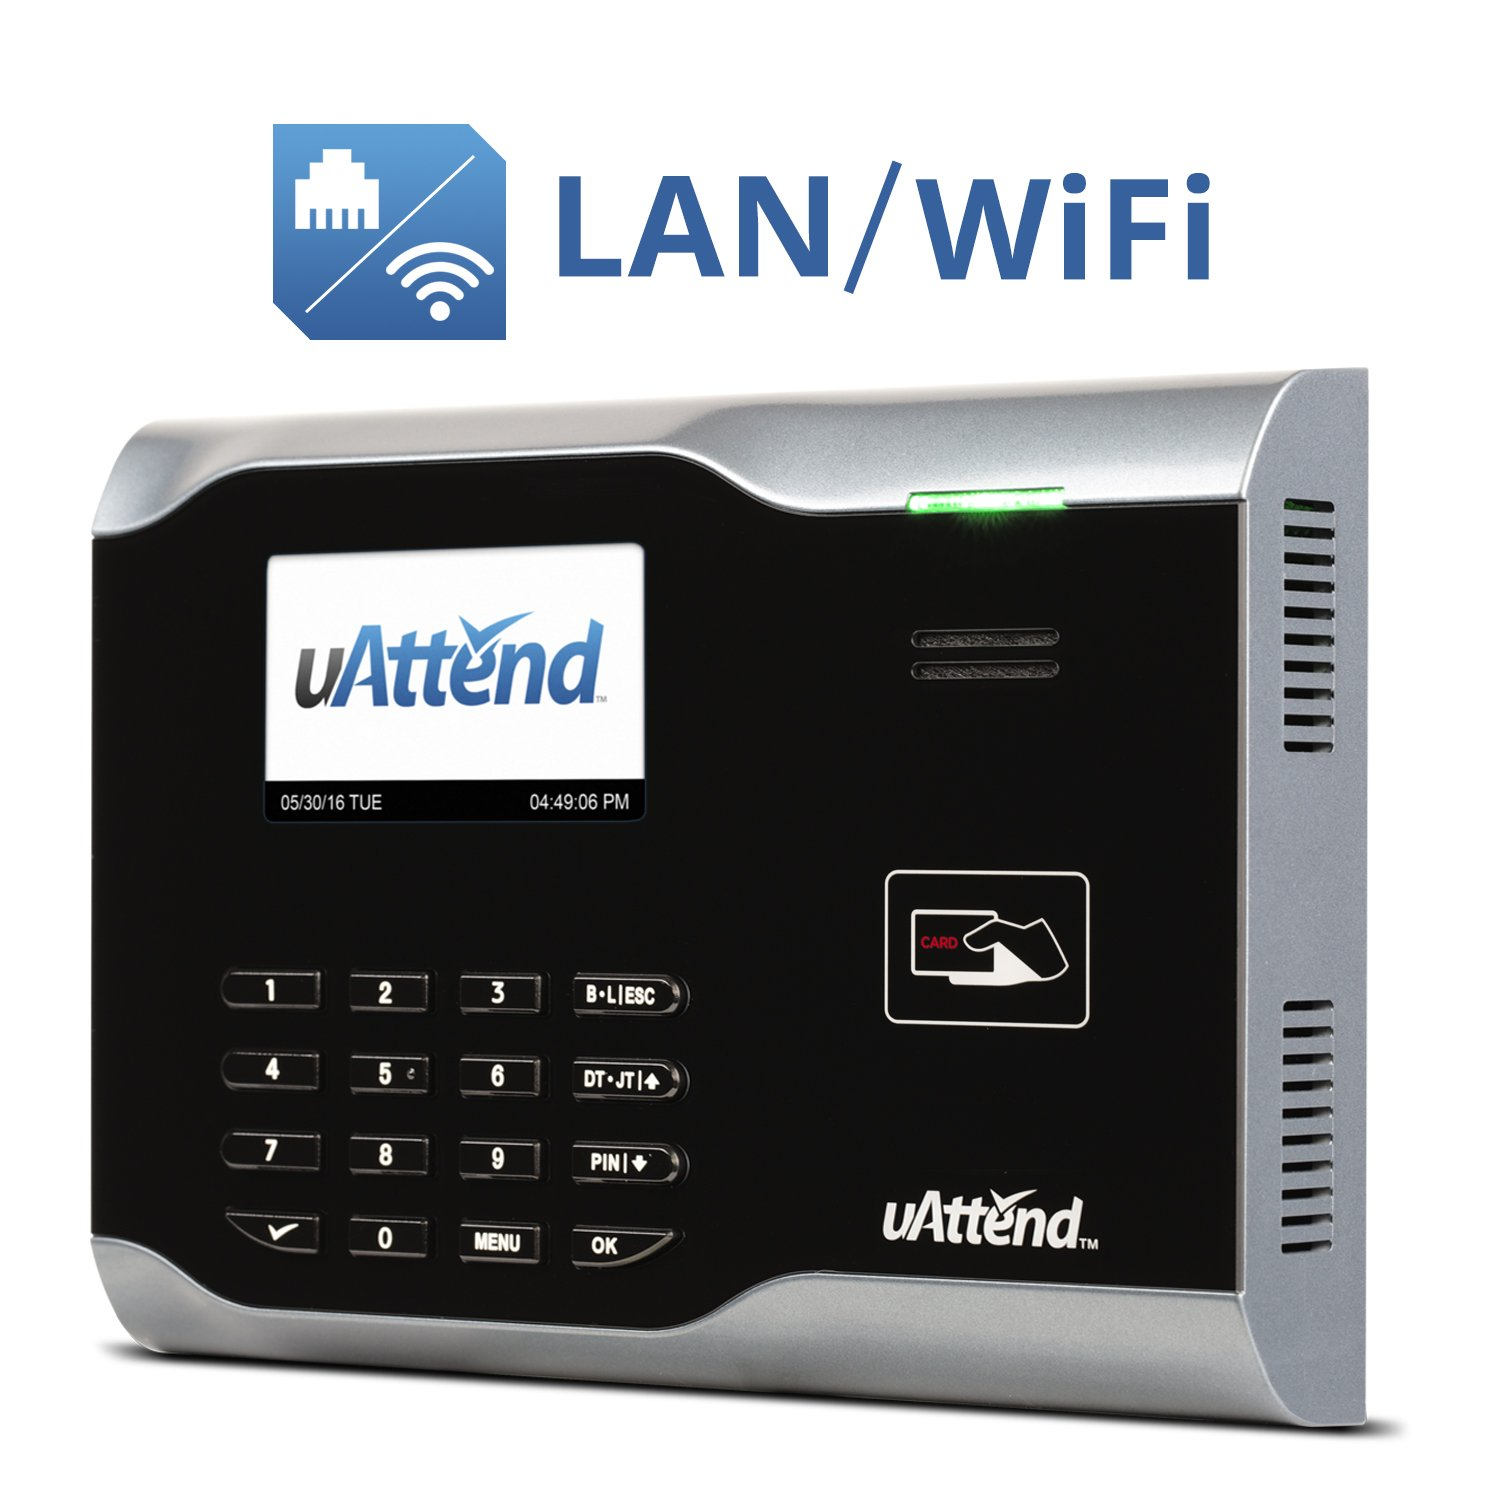 uAttend CB6500 Wi-Fi Employee Management Time Clock by uAttend